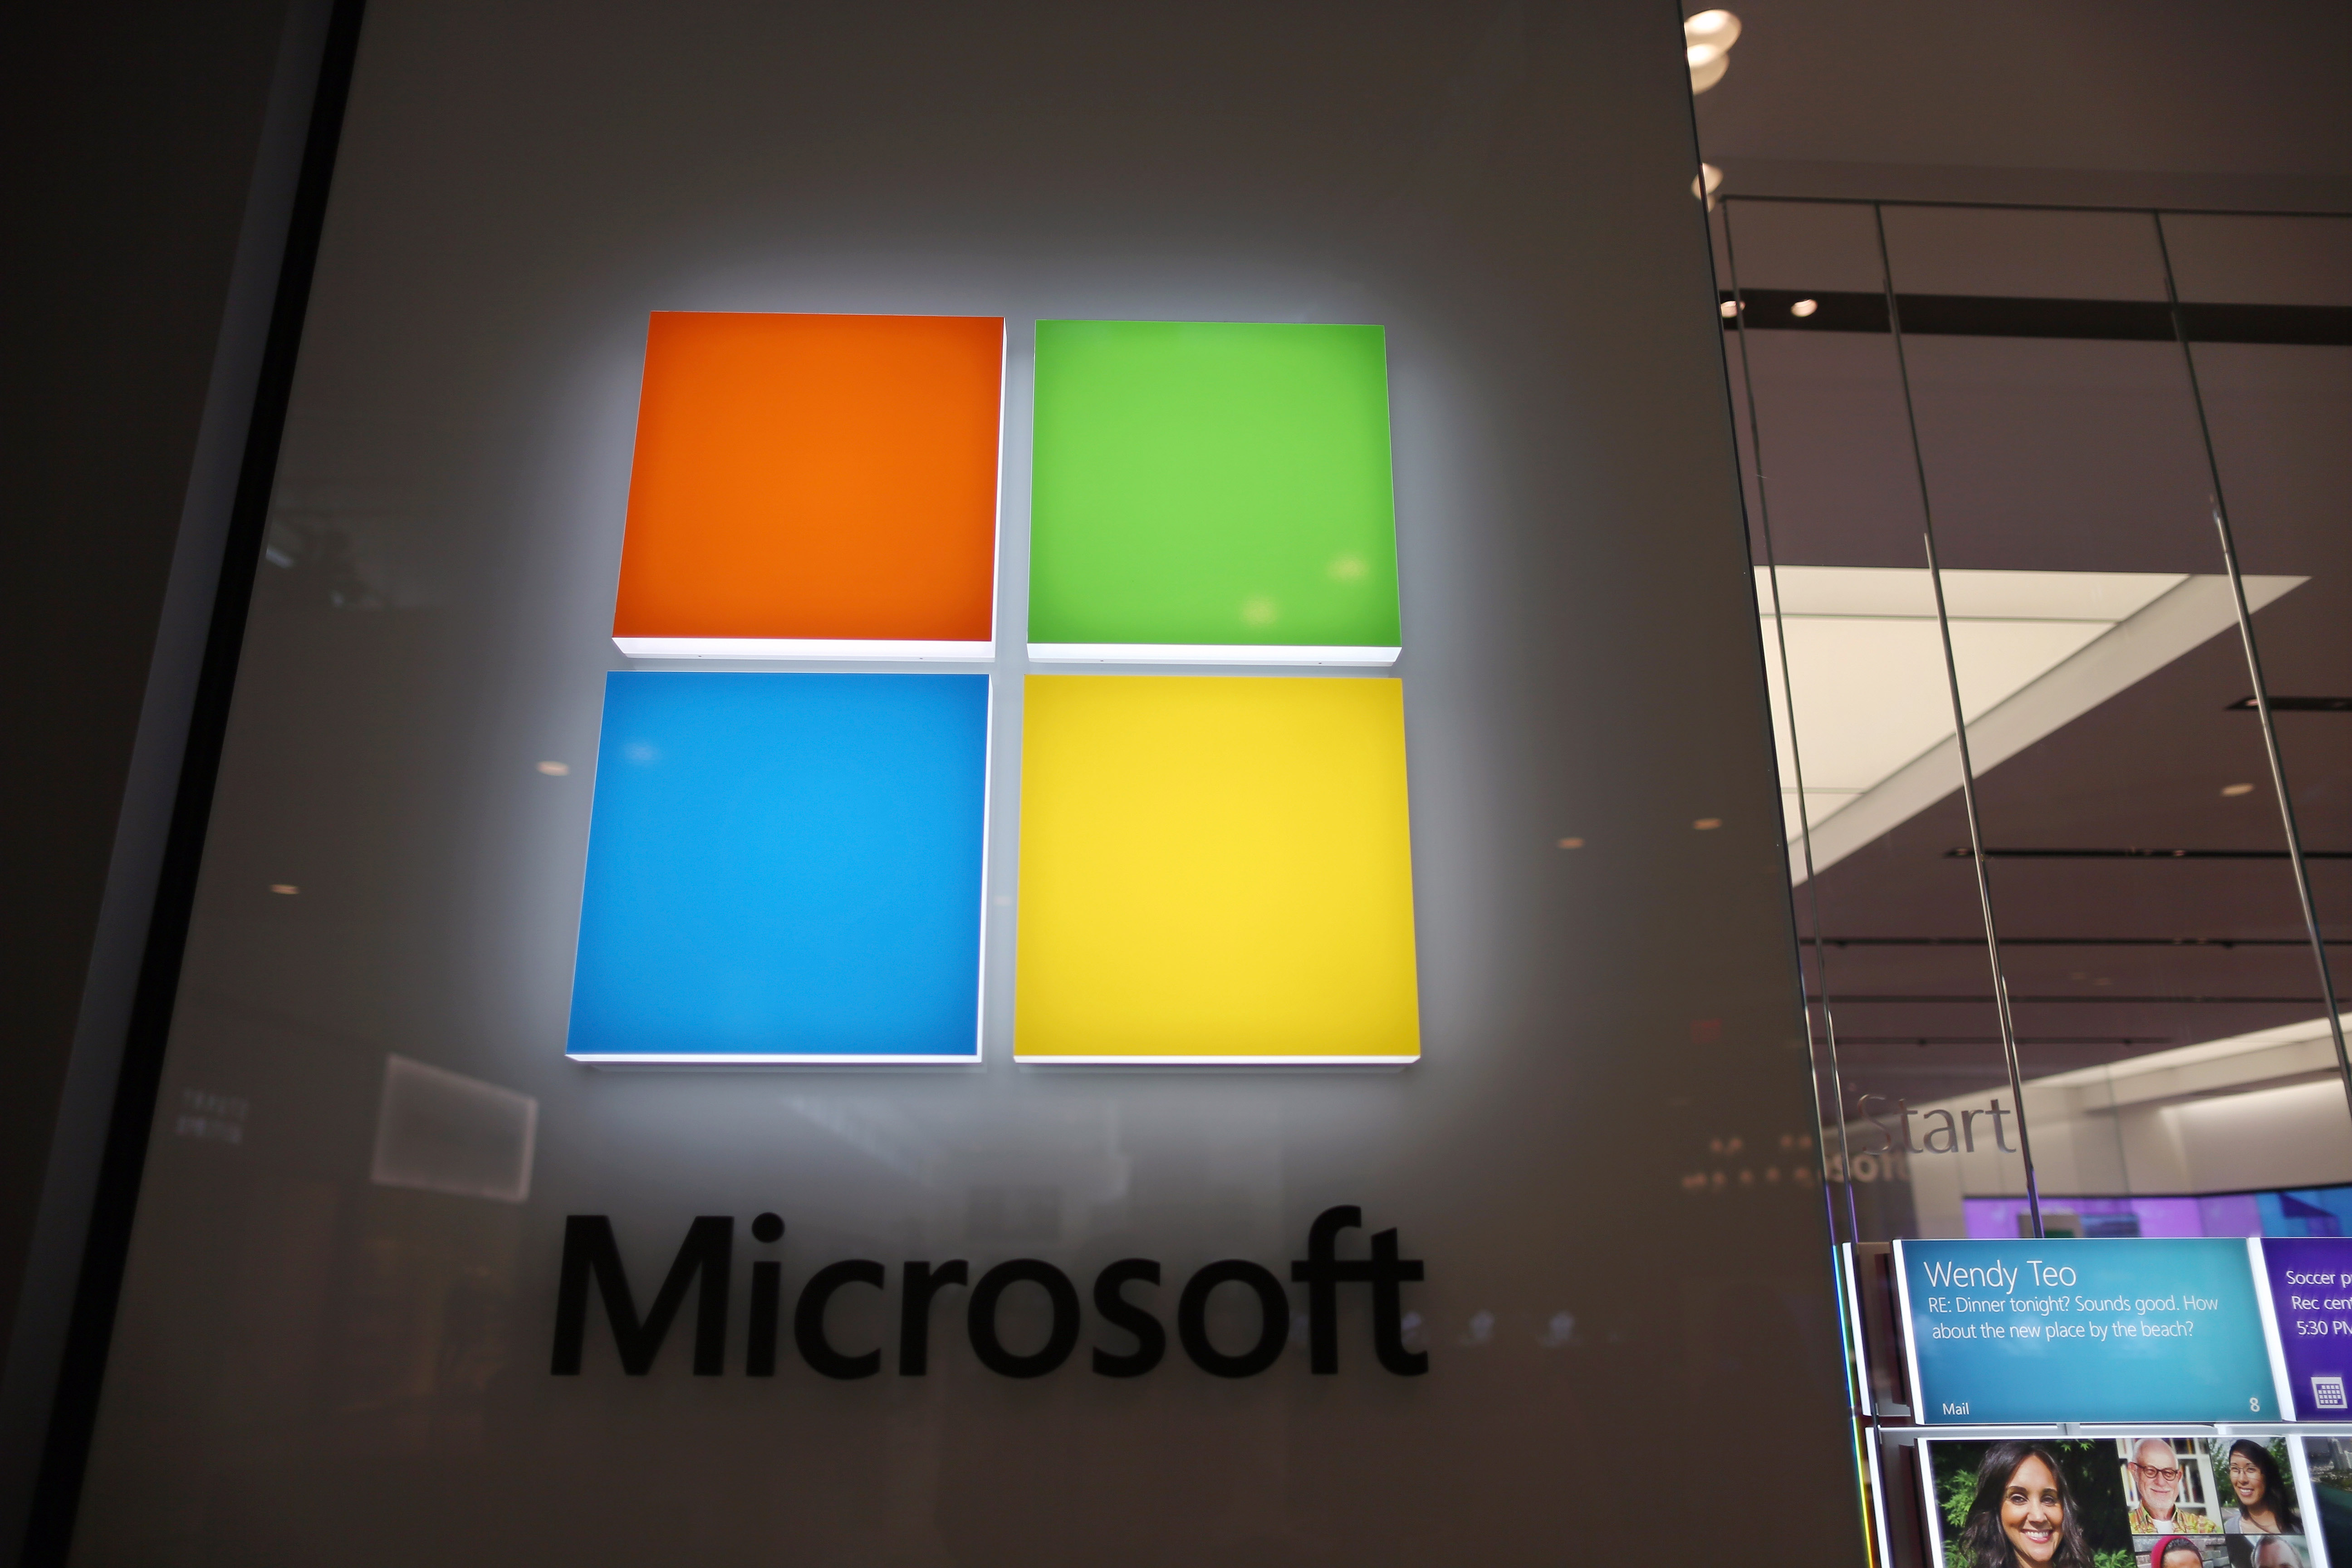 A sign is seen on the wall outside of a Microsoft store in the Dadeland Mall.